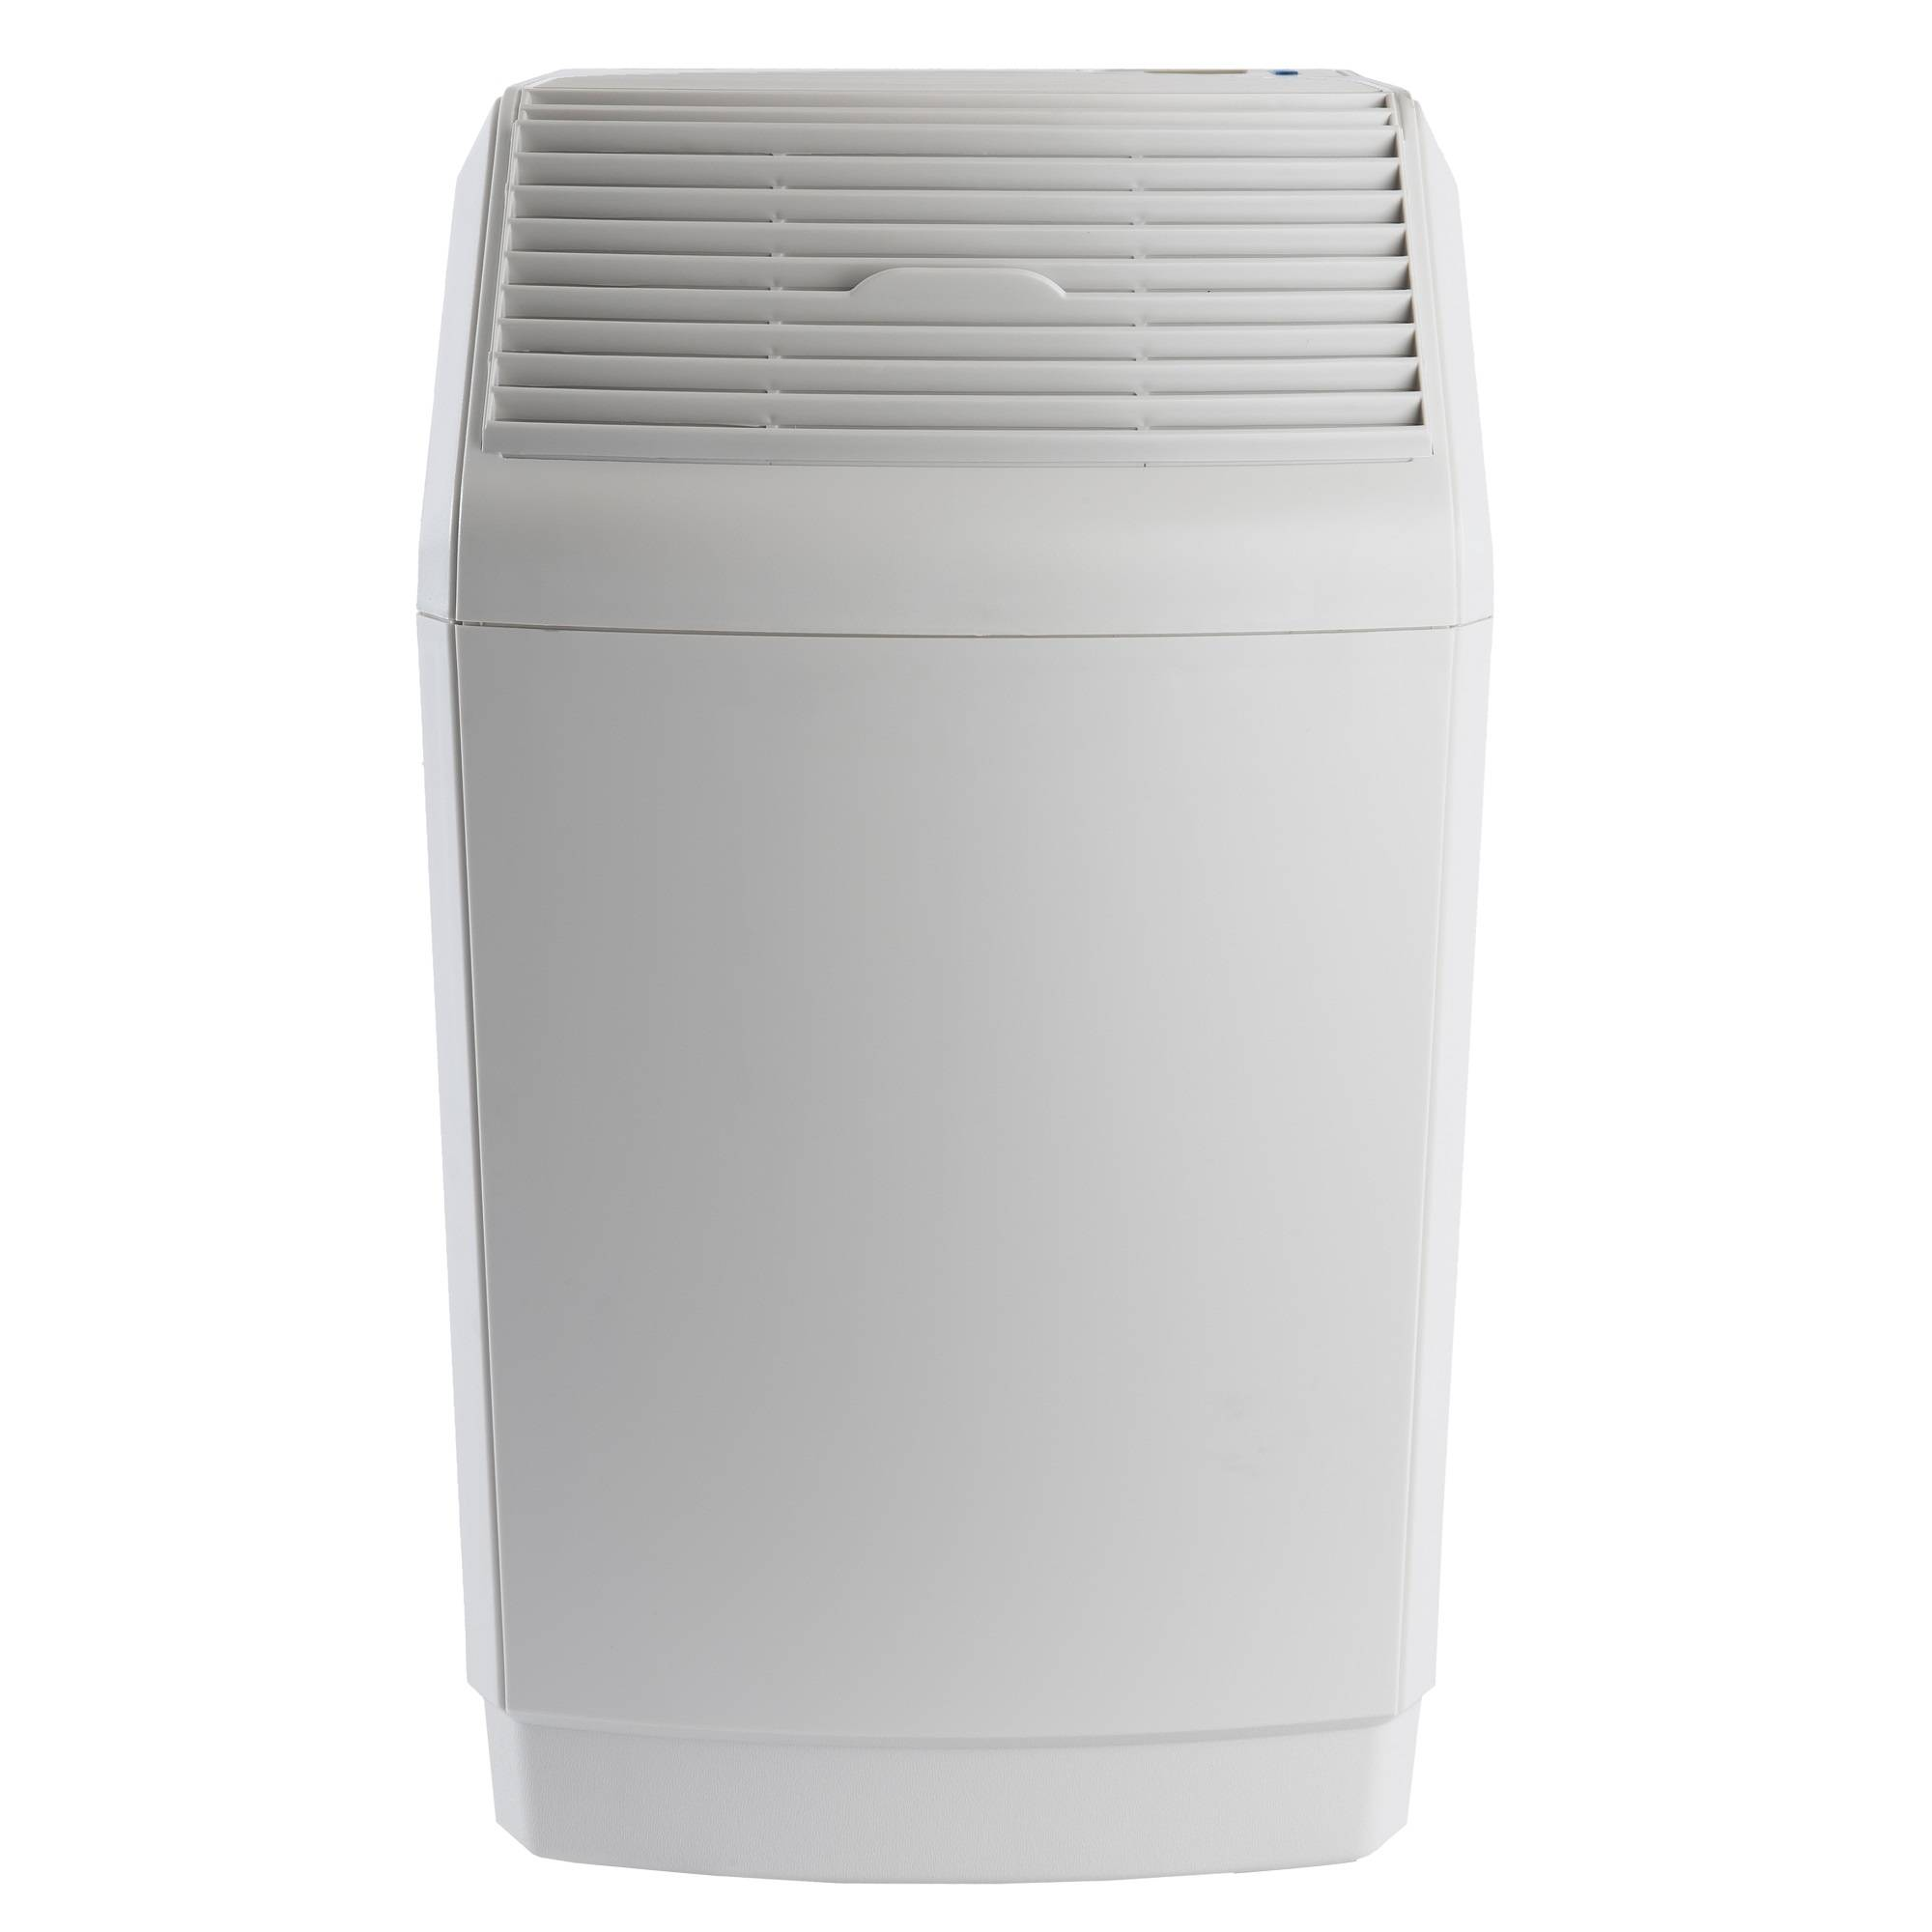 AIRCARE 831000 Whole House Humidifier Walmart.com #596472